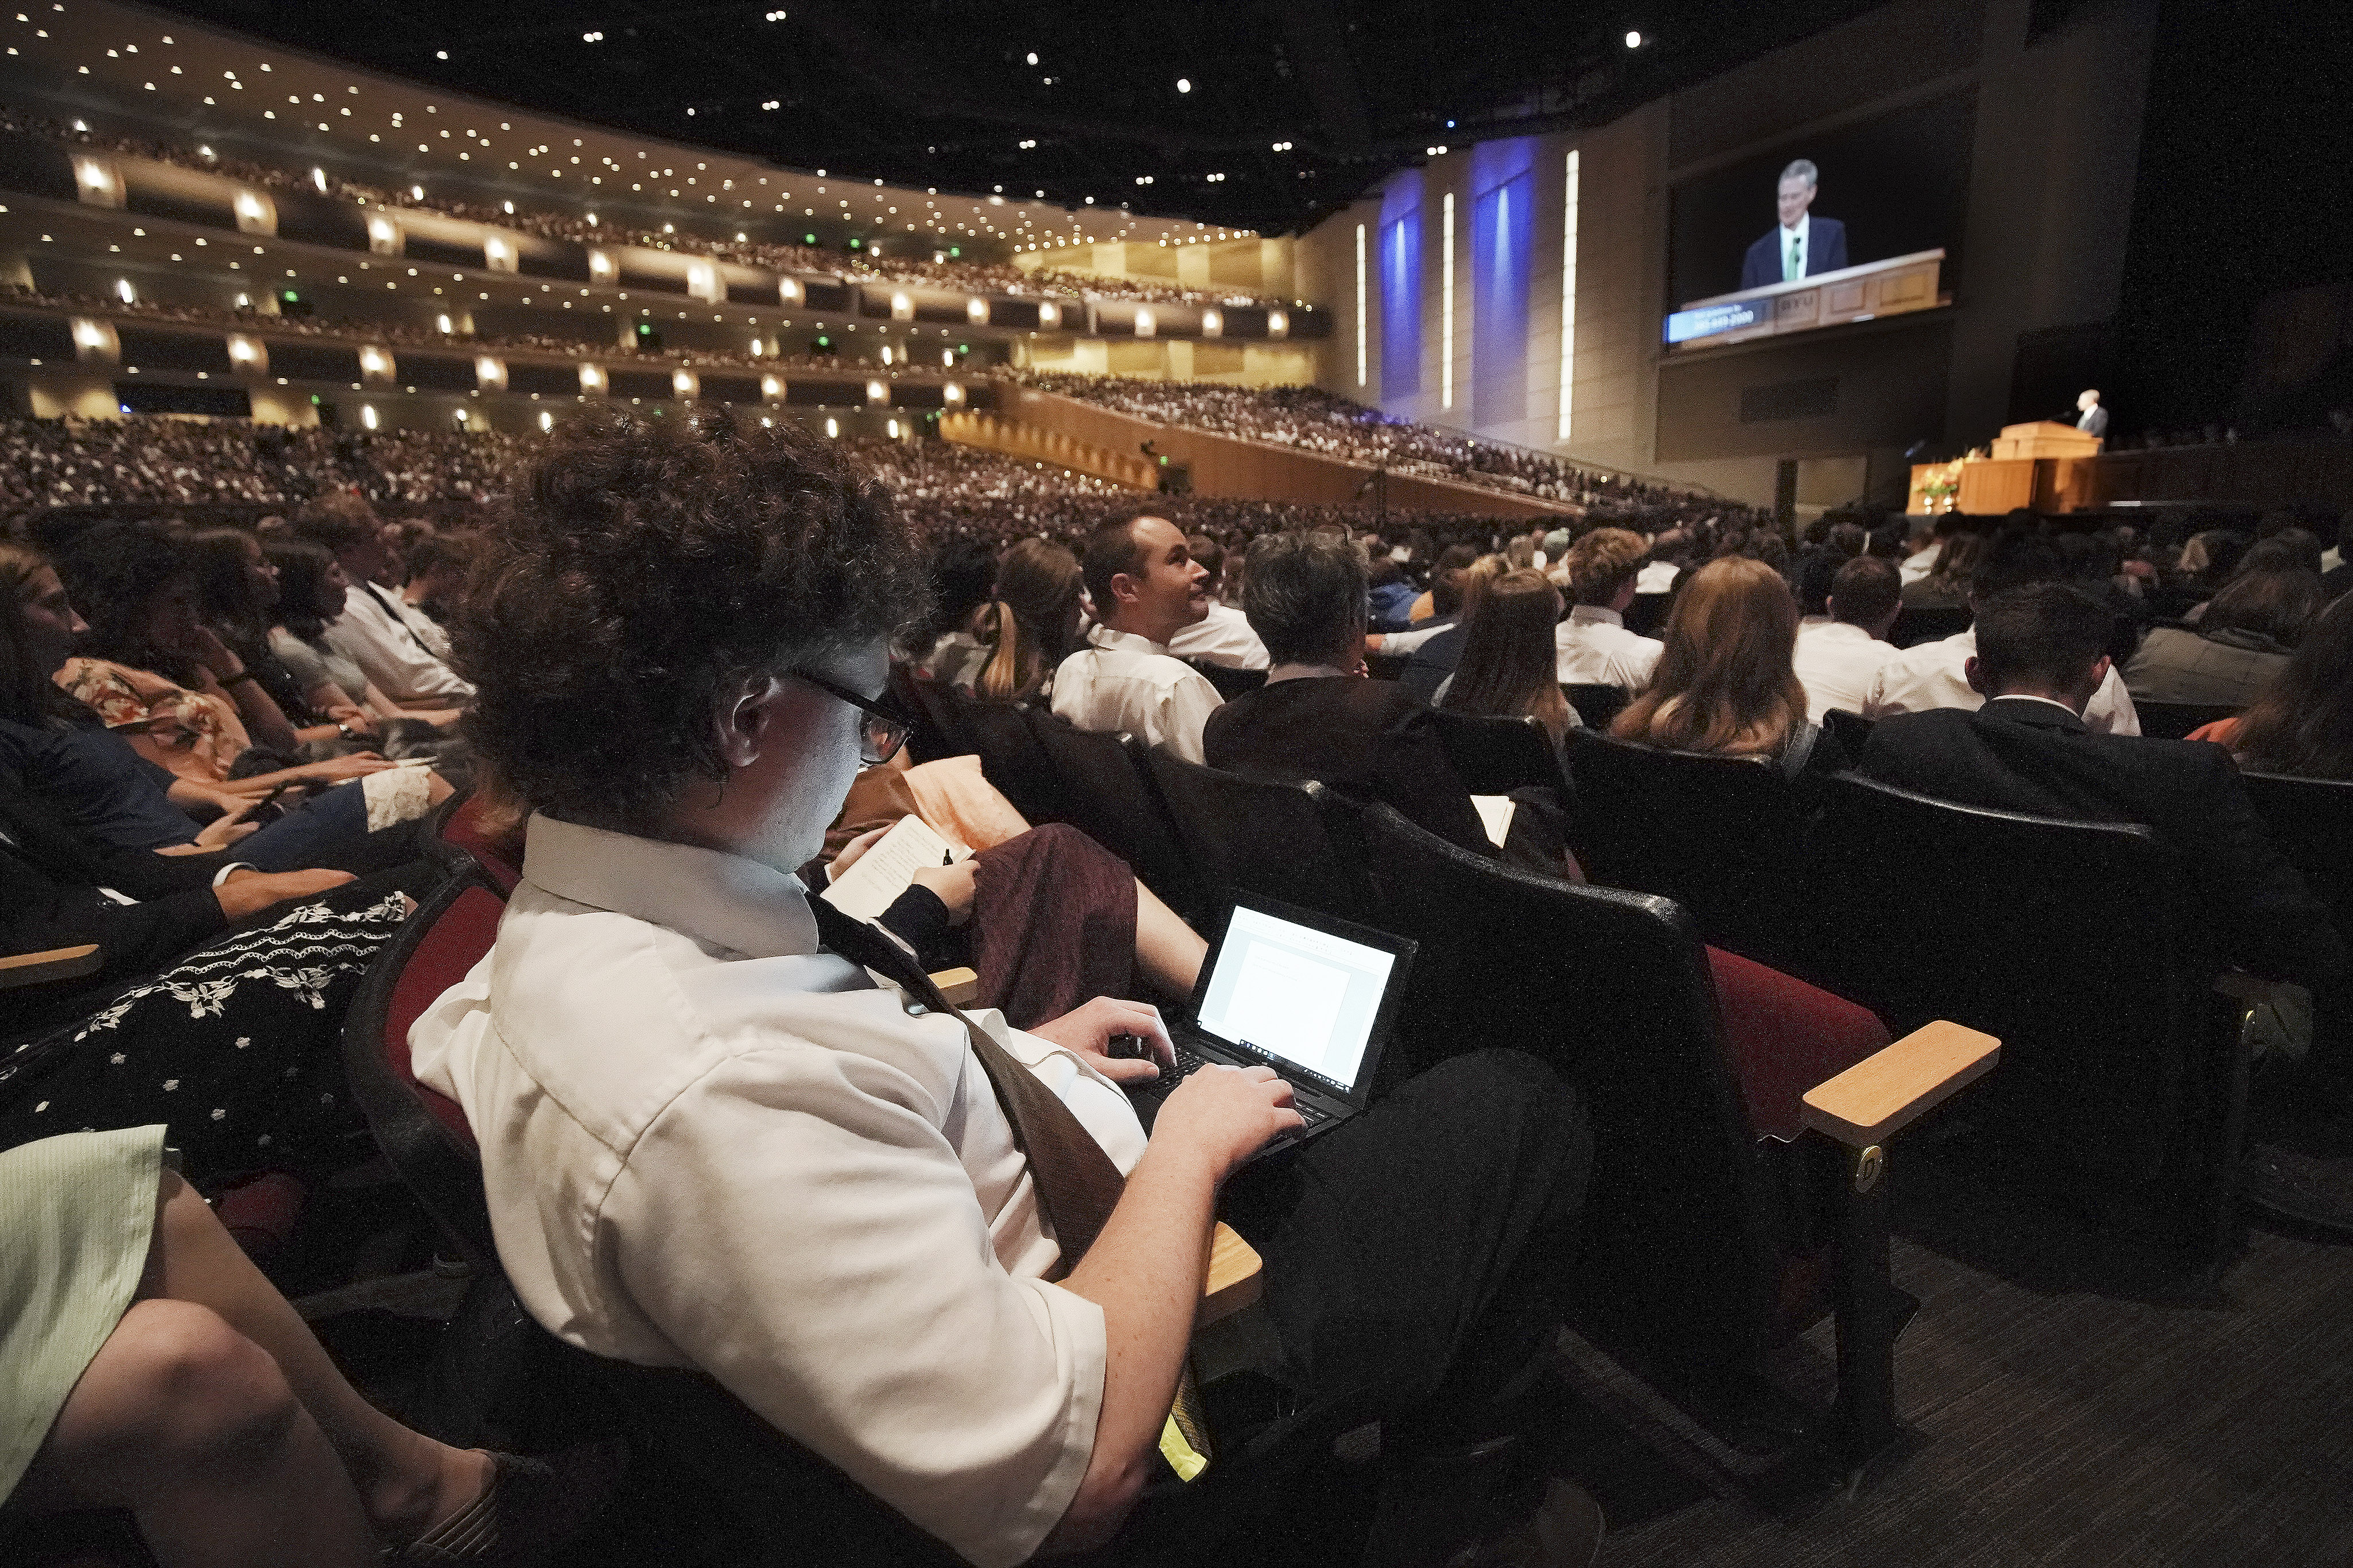 Student Joshua Elliott texts a question to Elder David A. Bednar, of the Quorum of the Twelve Apostles of The Church of Jesus Christ of Latter-day Saints, during a fireside at BYU Idaho in Rexburg on Sunday, Sept. 22, 2019.